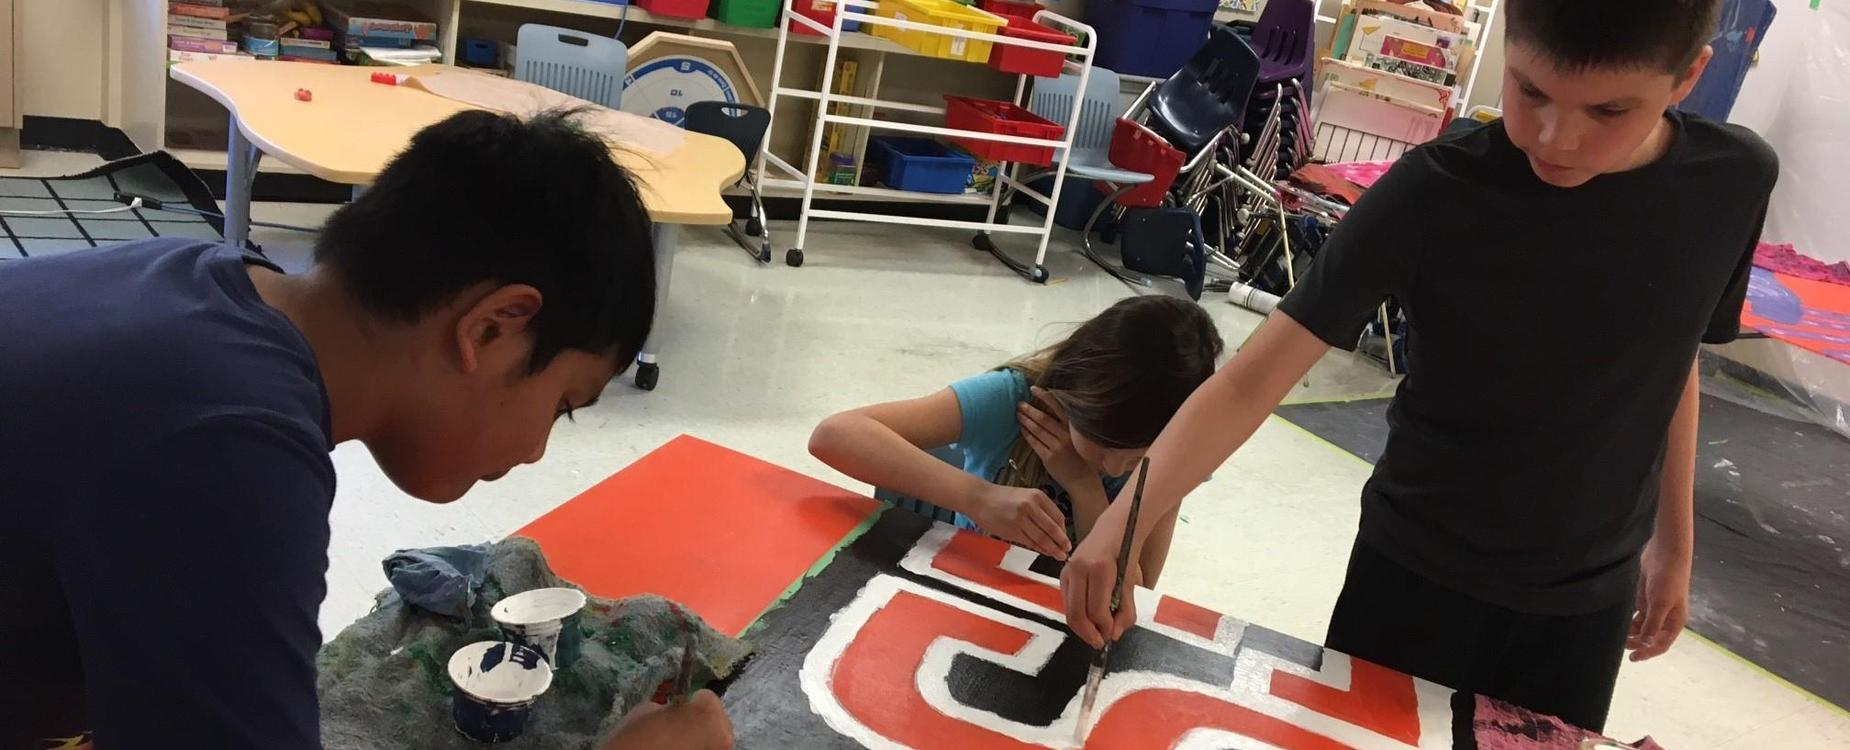 3 students are painting a mural